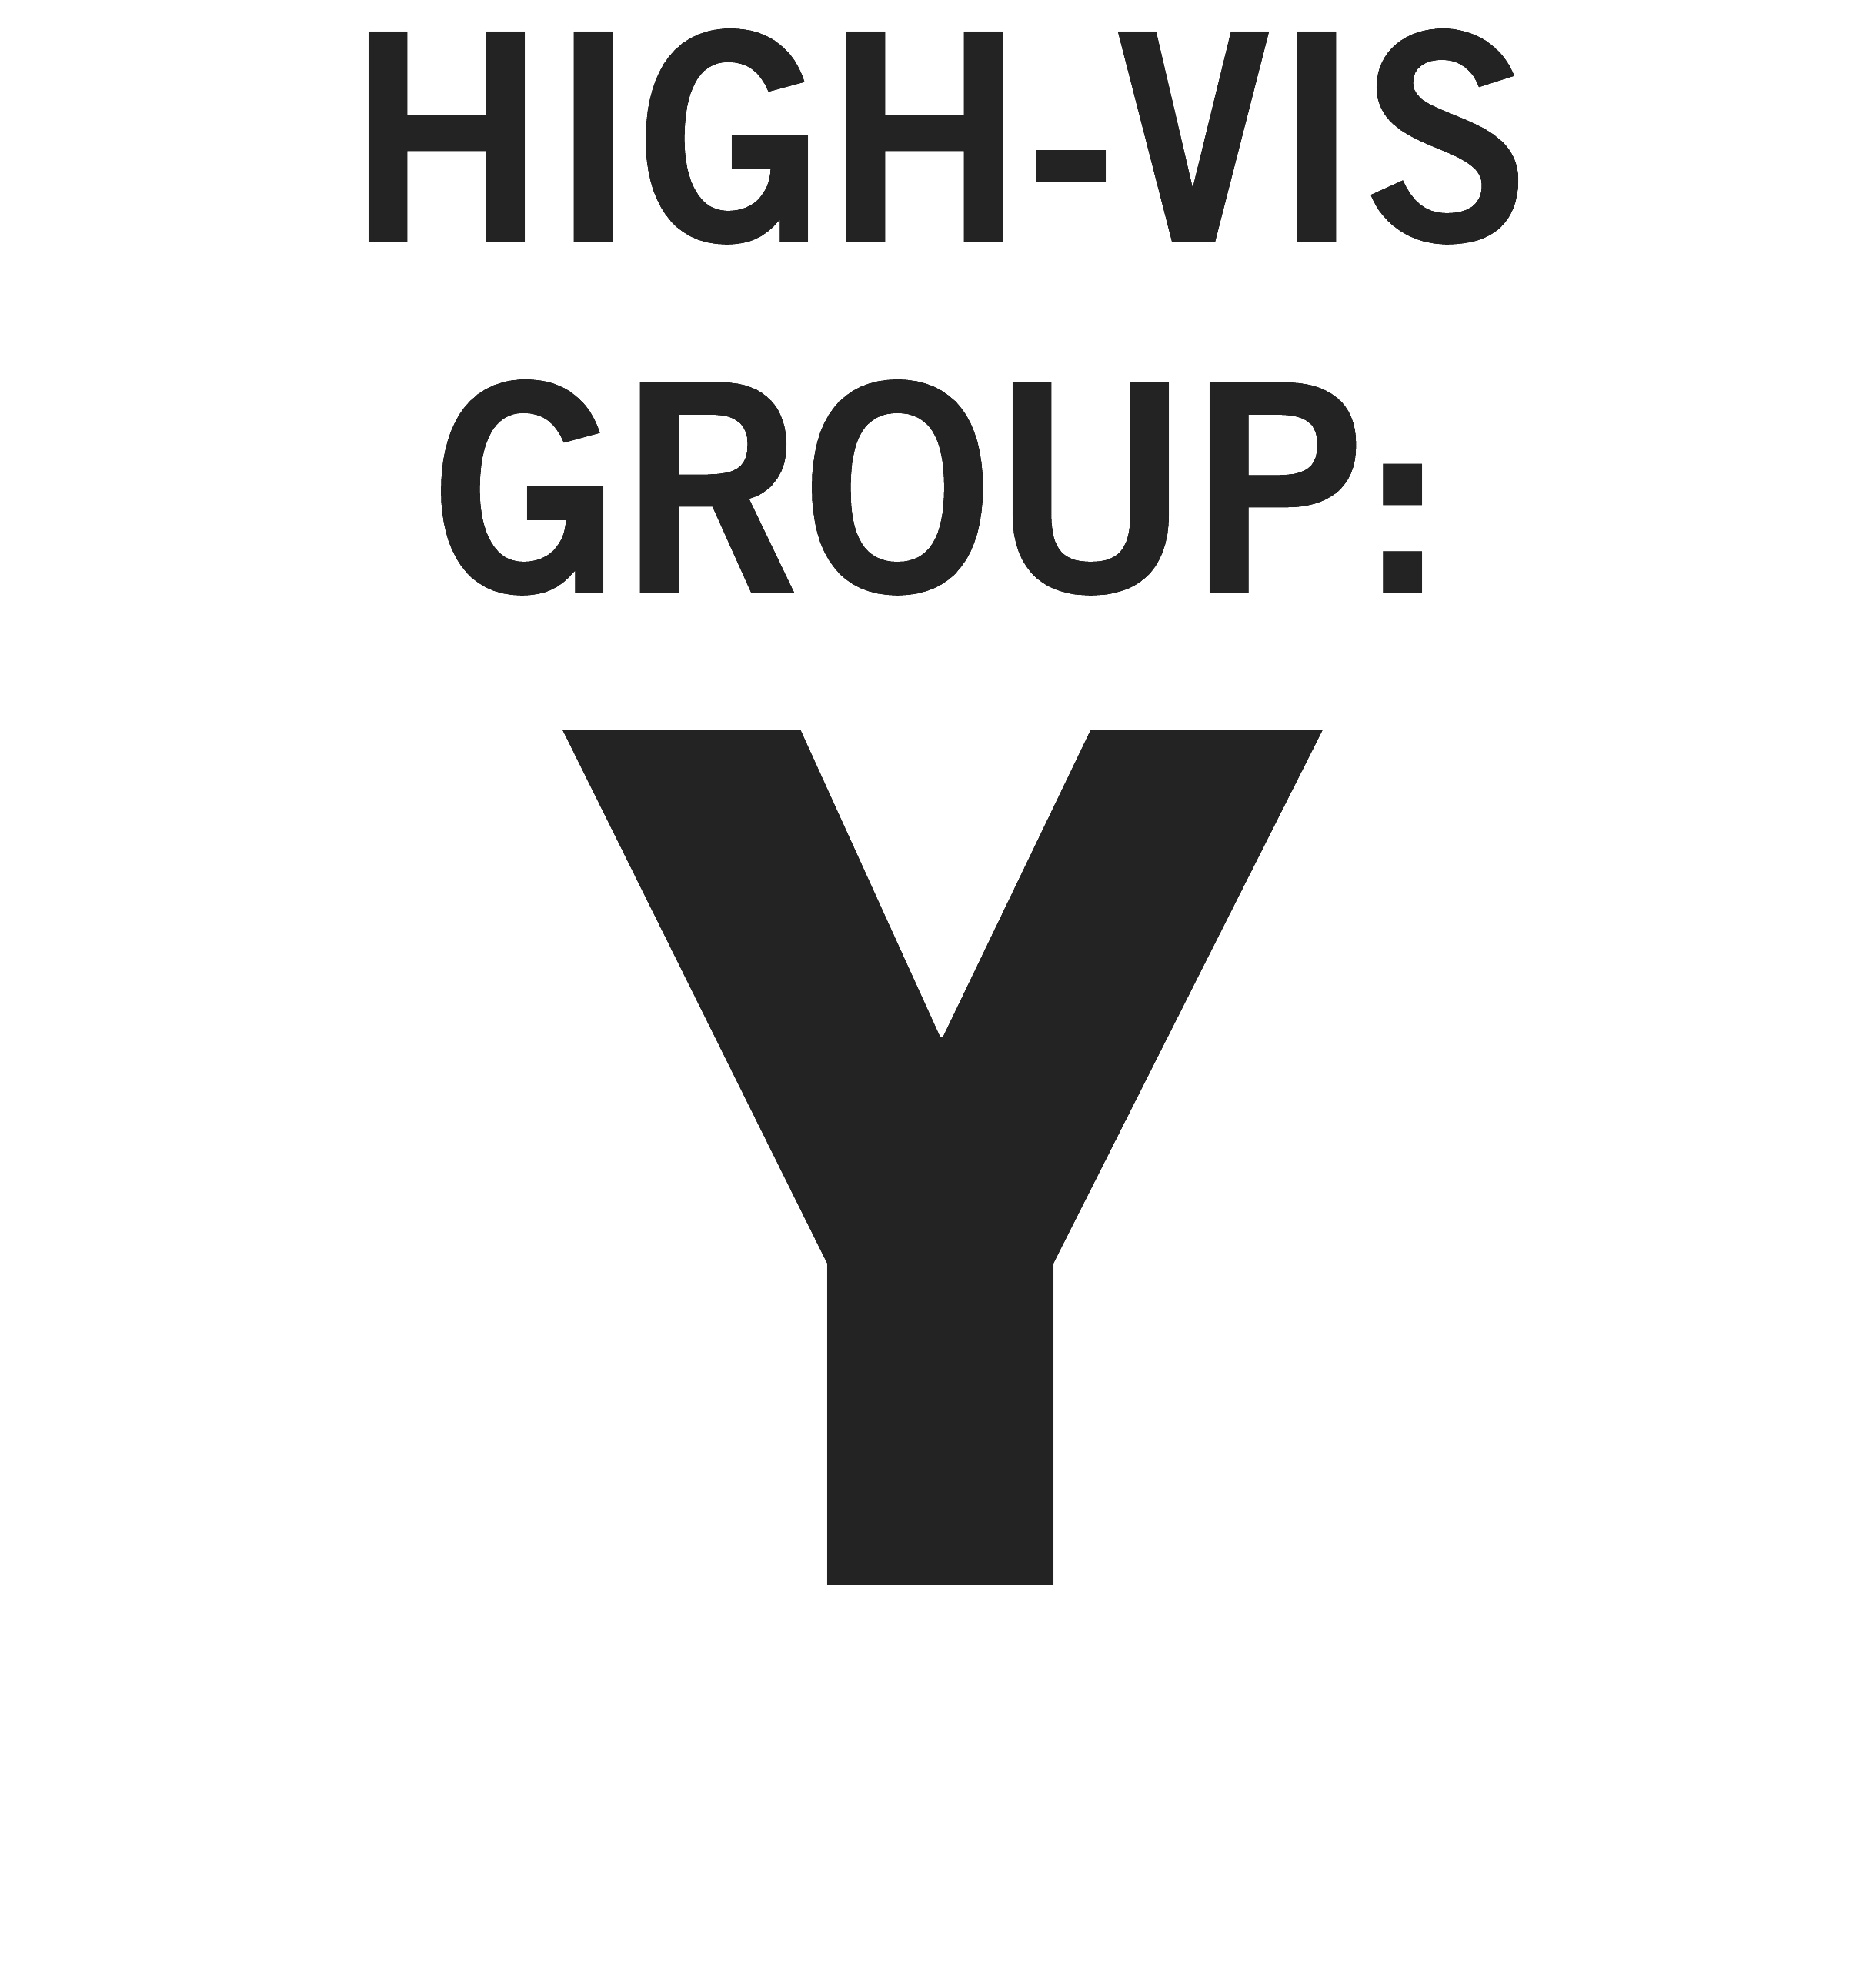 High-vis Group Y